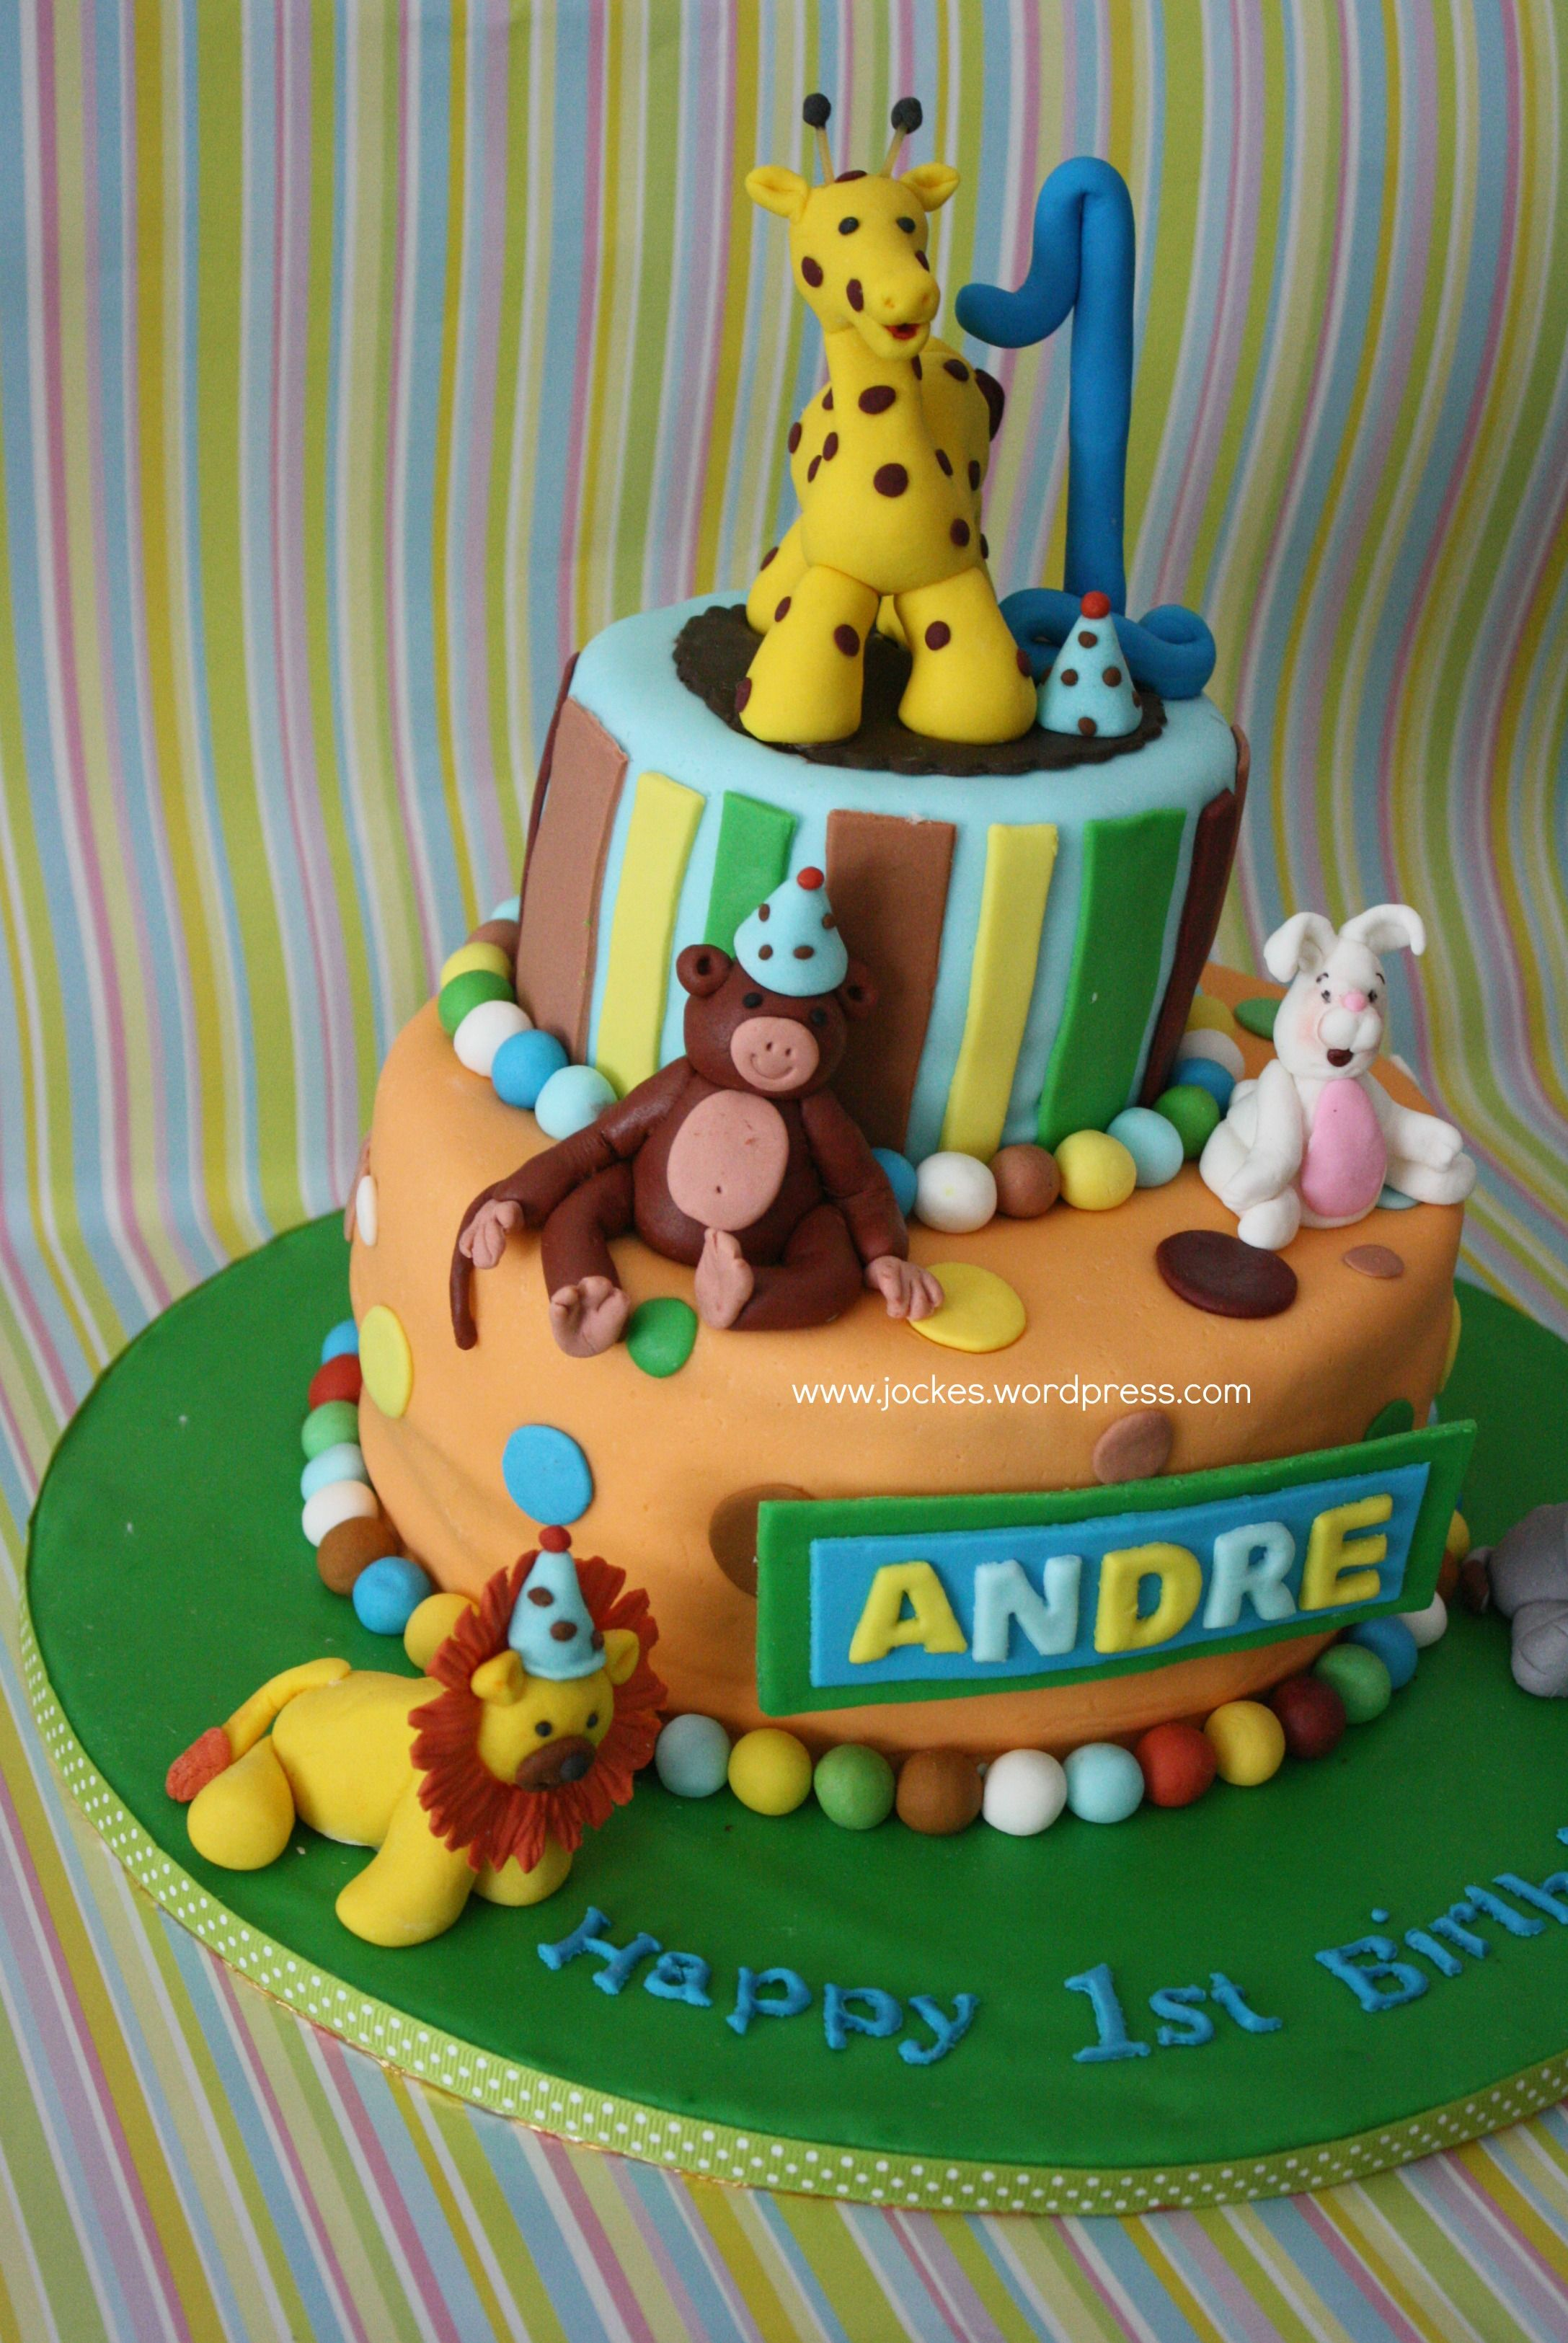 birthday cakes for 1 year olds boy - Google Search (With ...